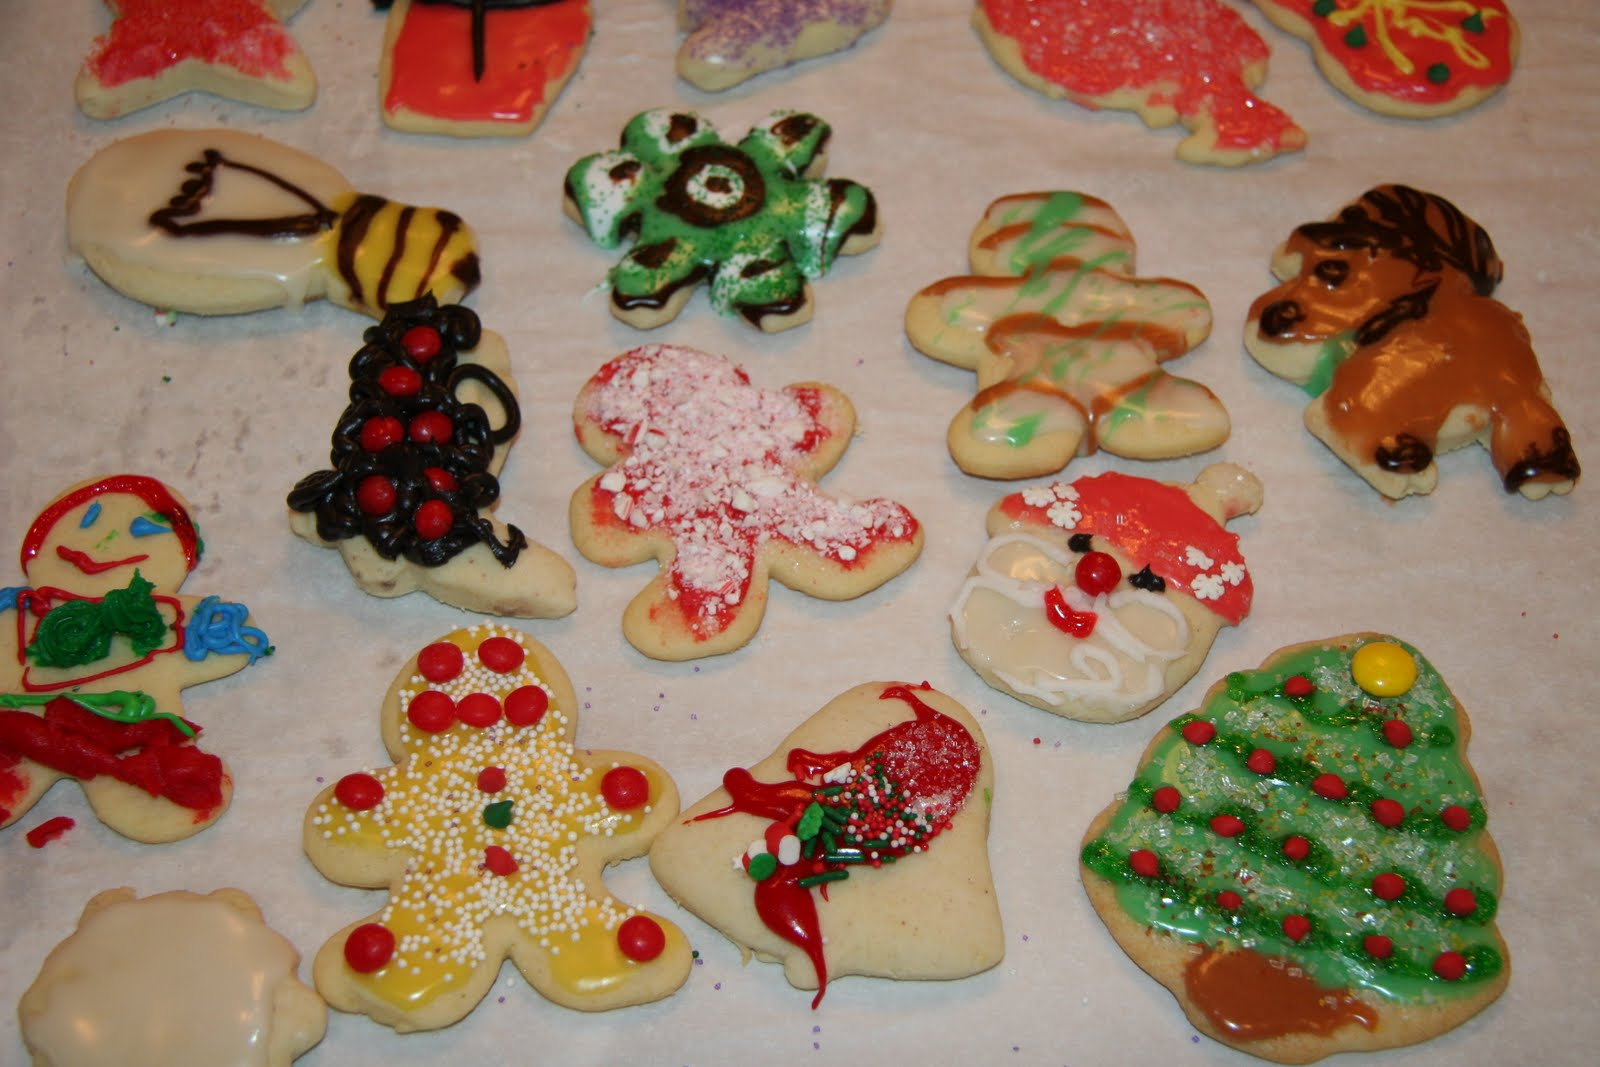 Our Life in DFW: Christmas Sugar Cookie Decorating 2010